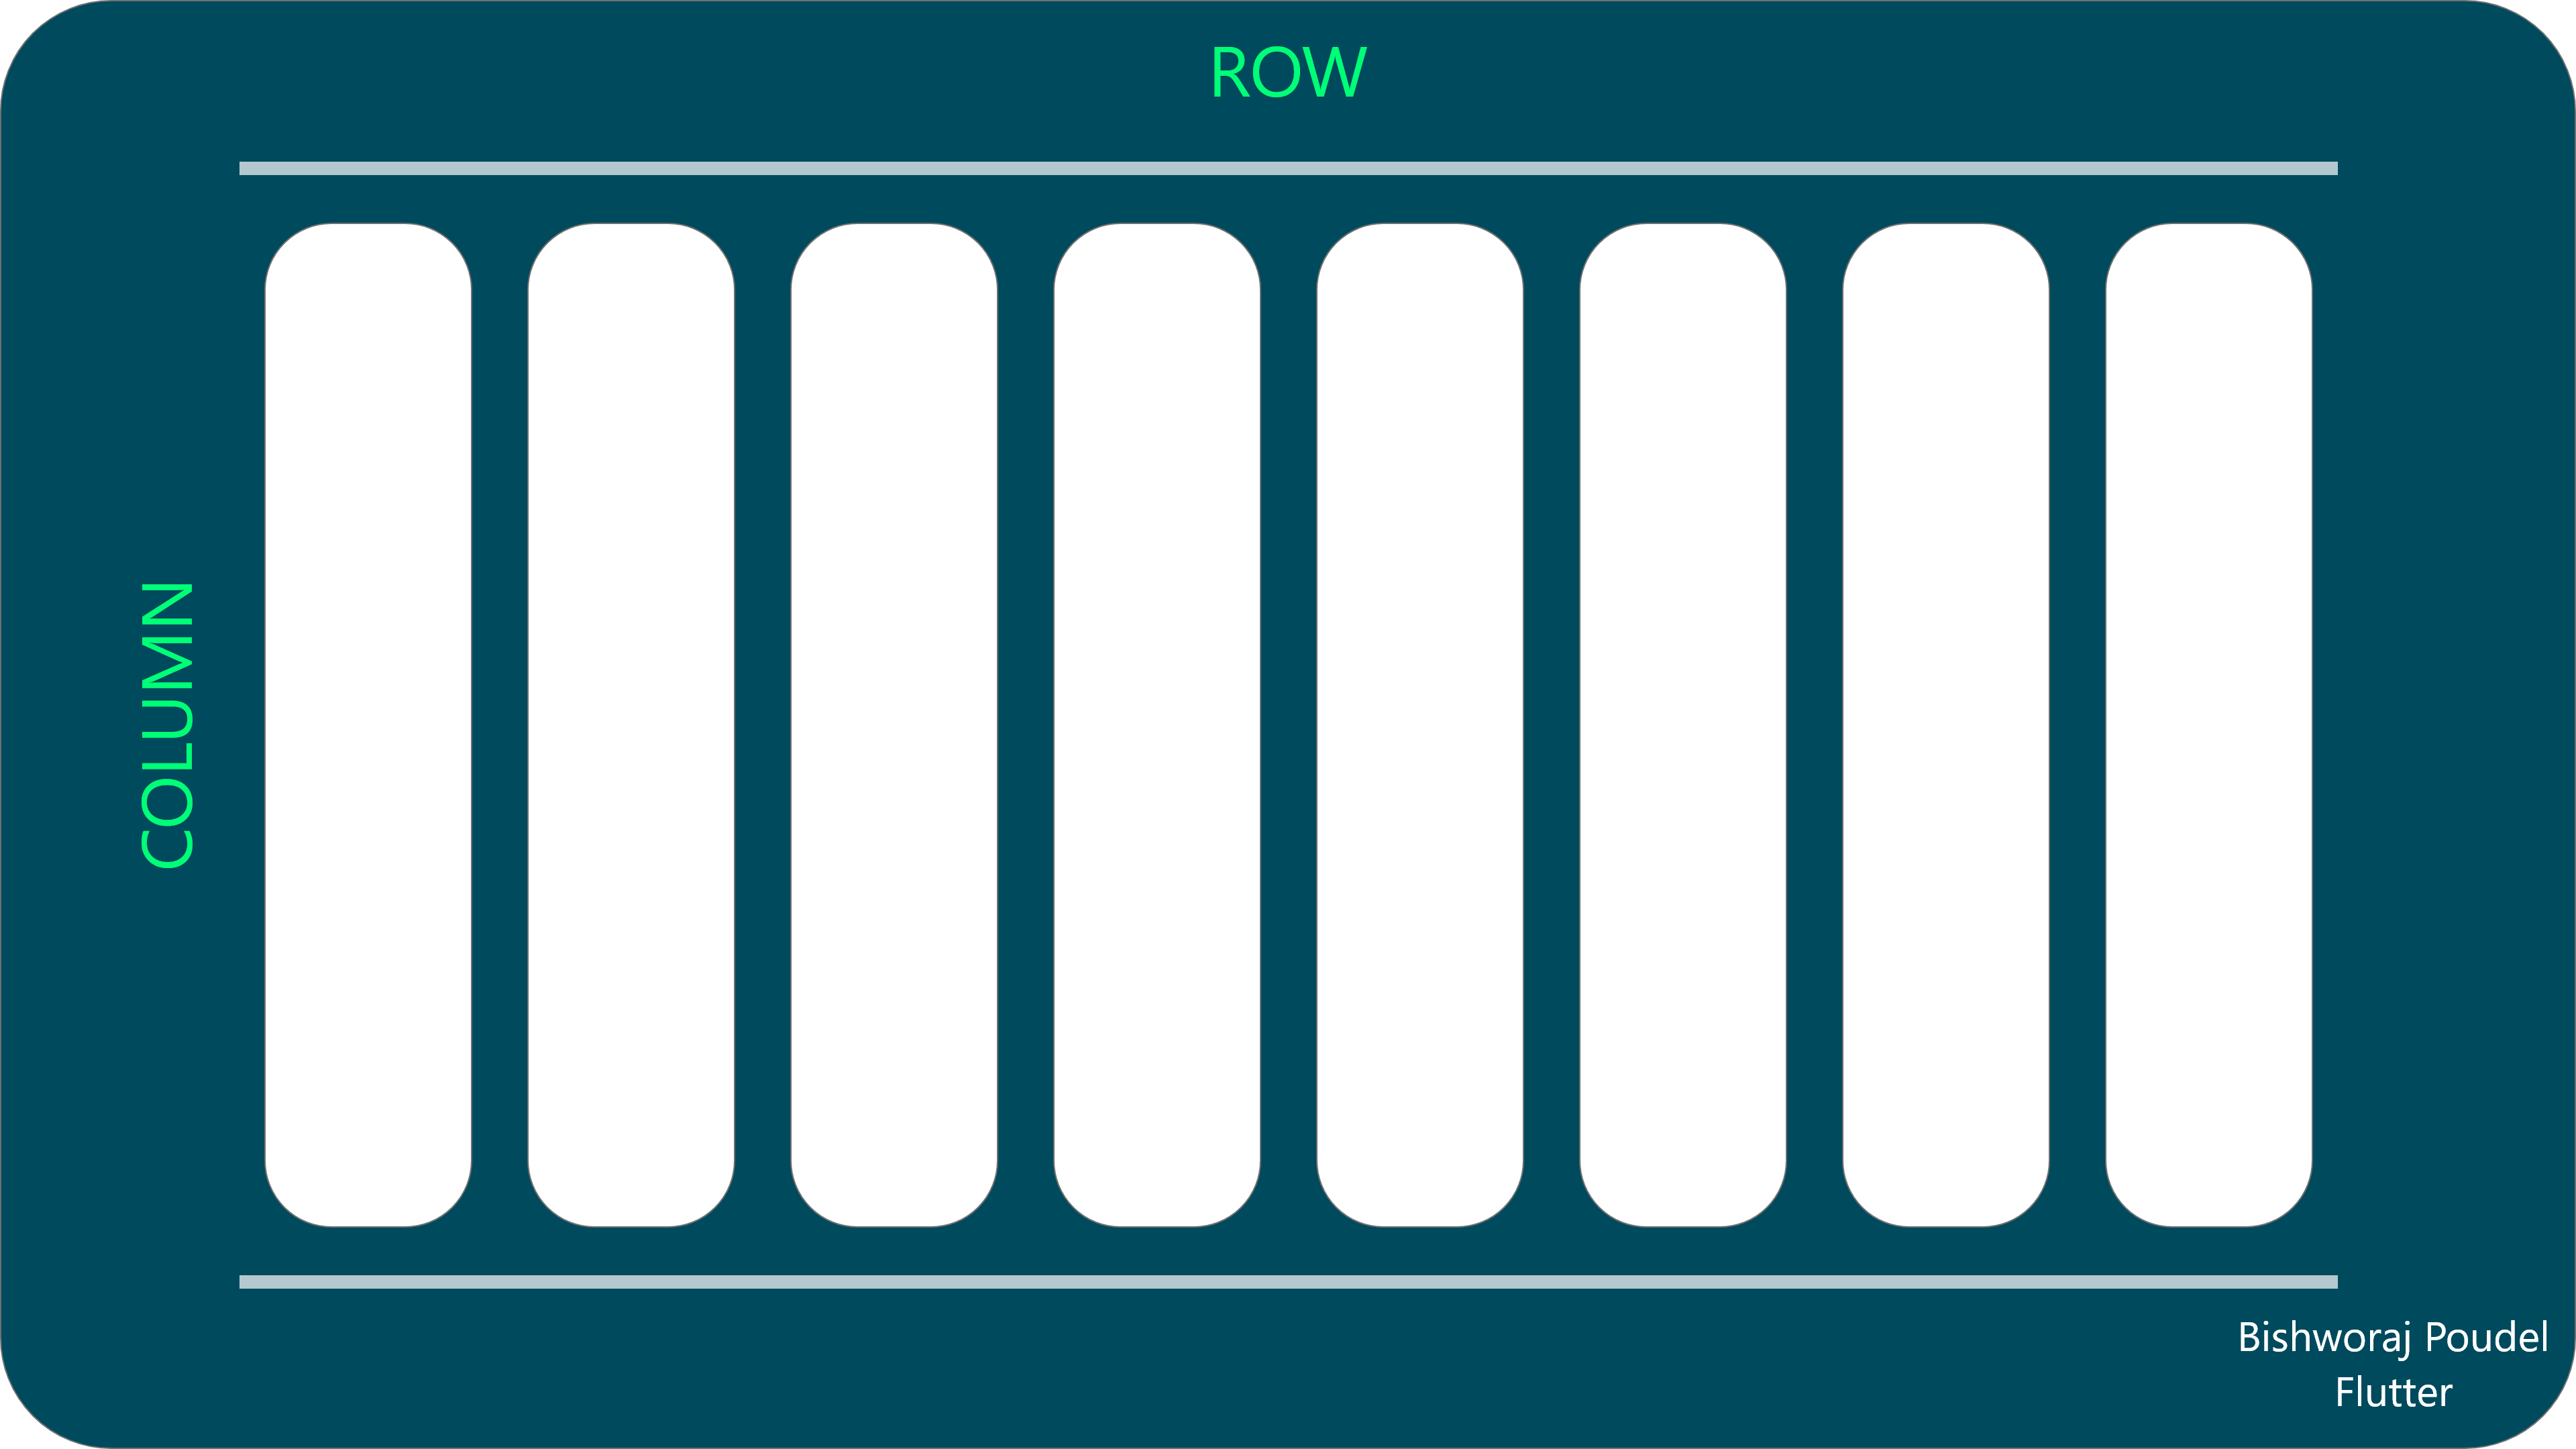 Understand Basic Of Row and Column In Flutter | by Bishworaj Poudel | Medium